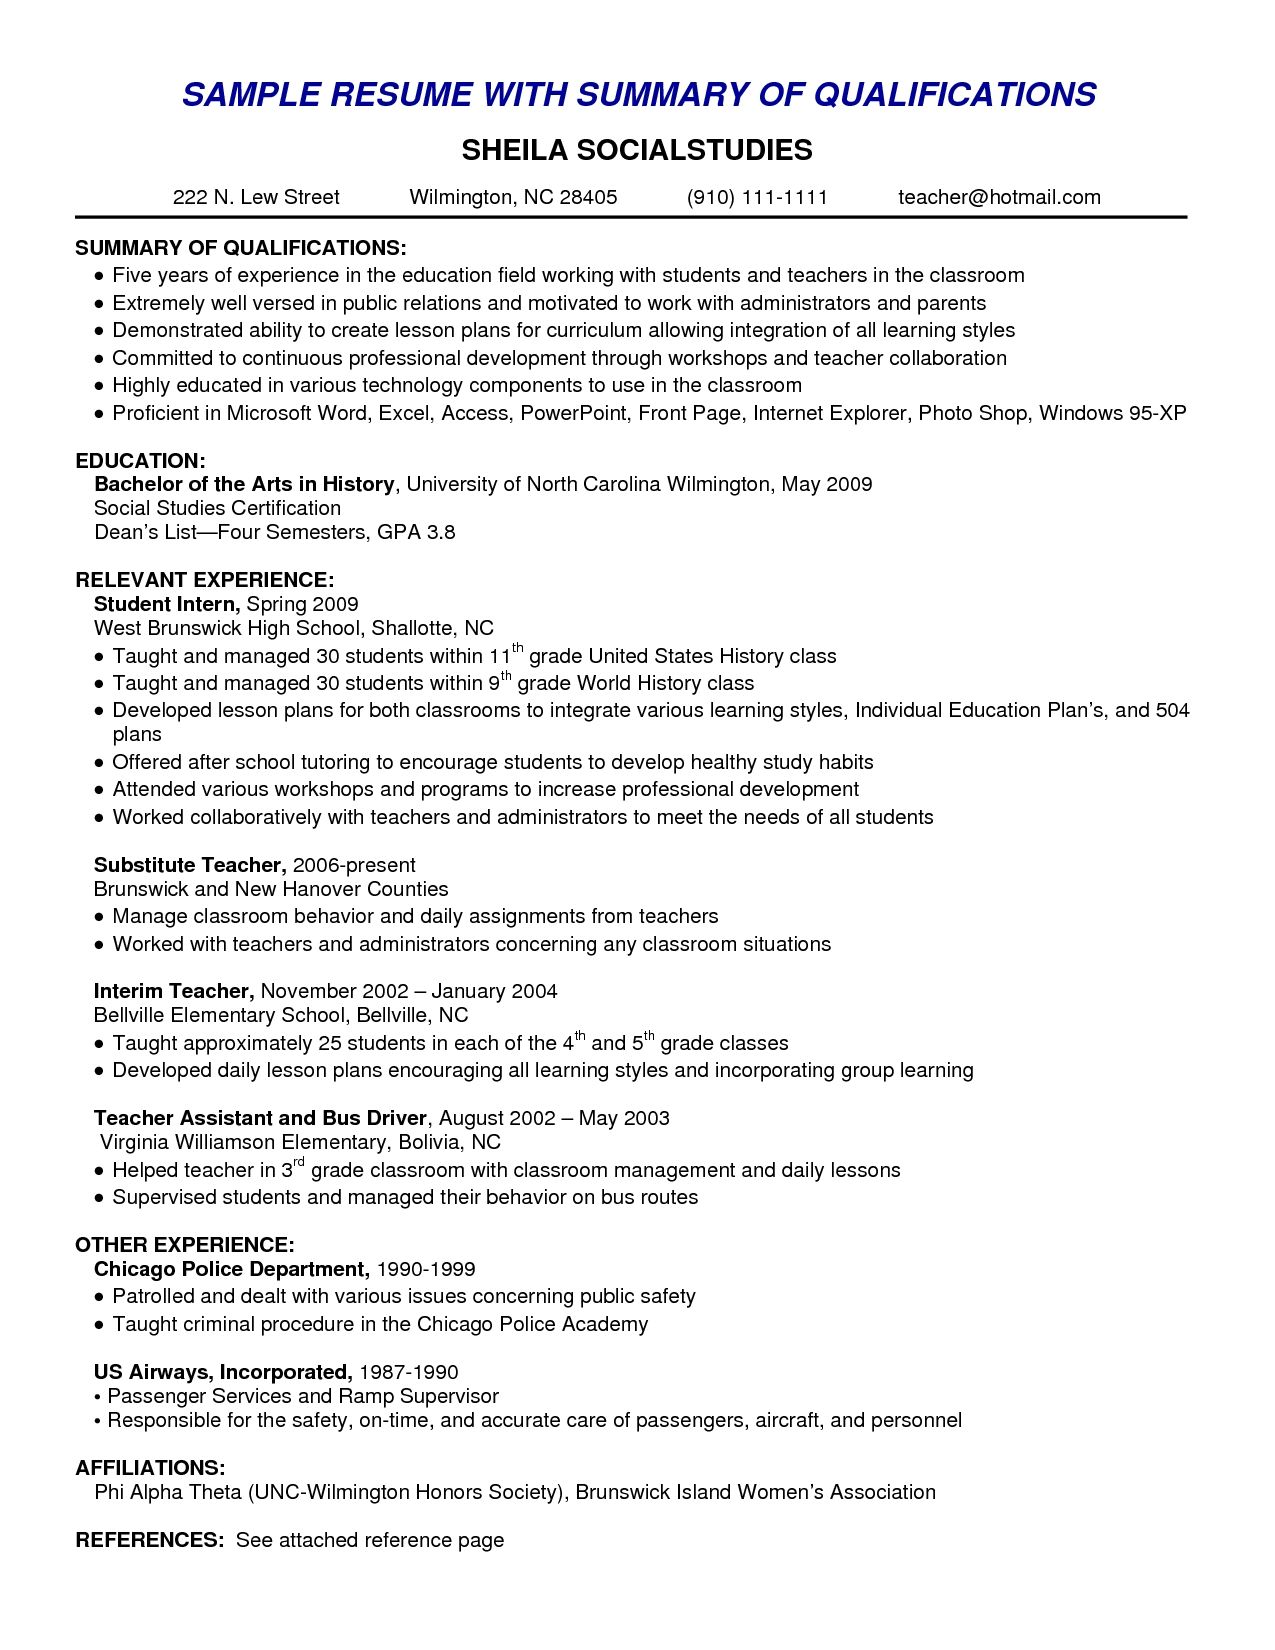 Skills And Abilities On A Resume Resume Skills Summary Examples Example Of Skills Summary For